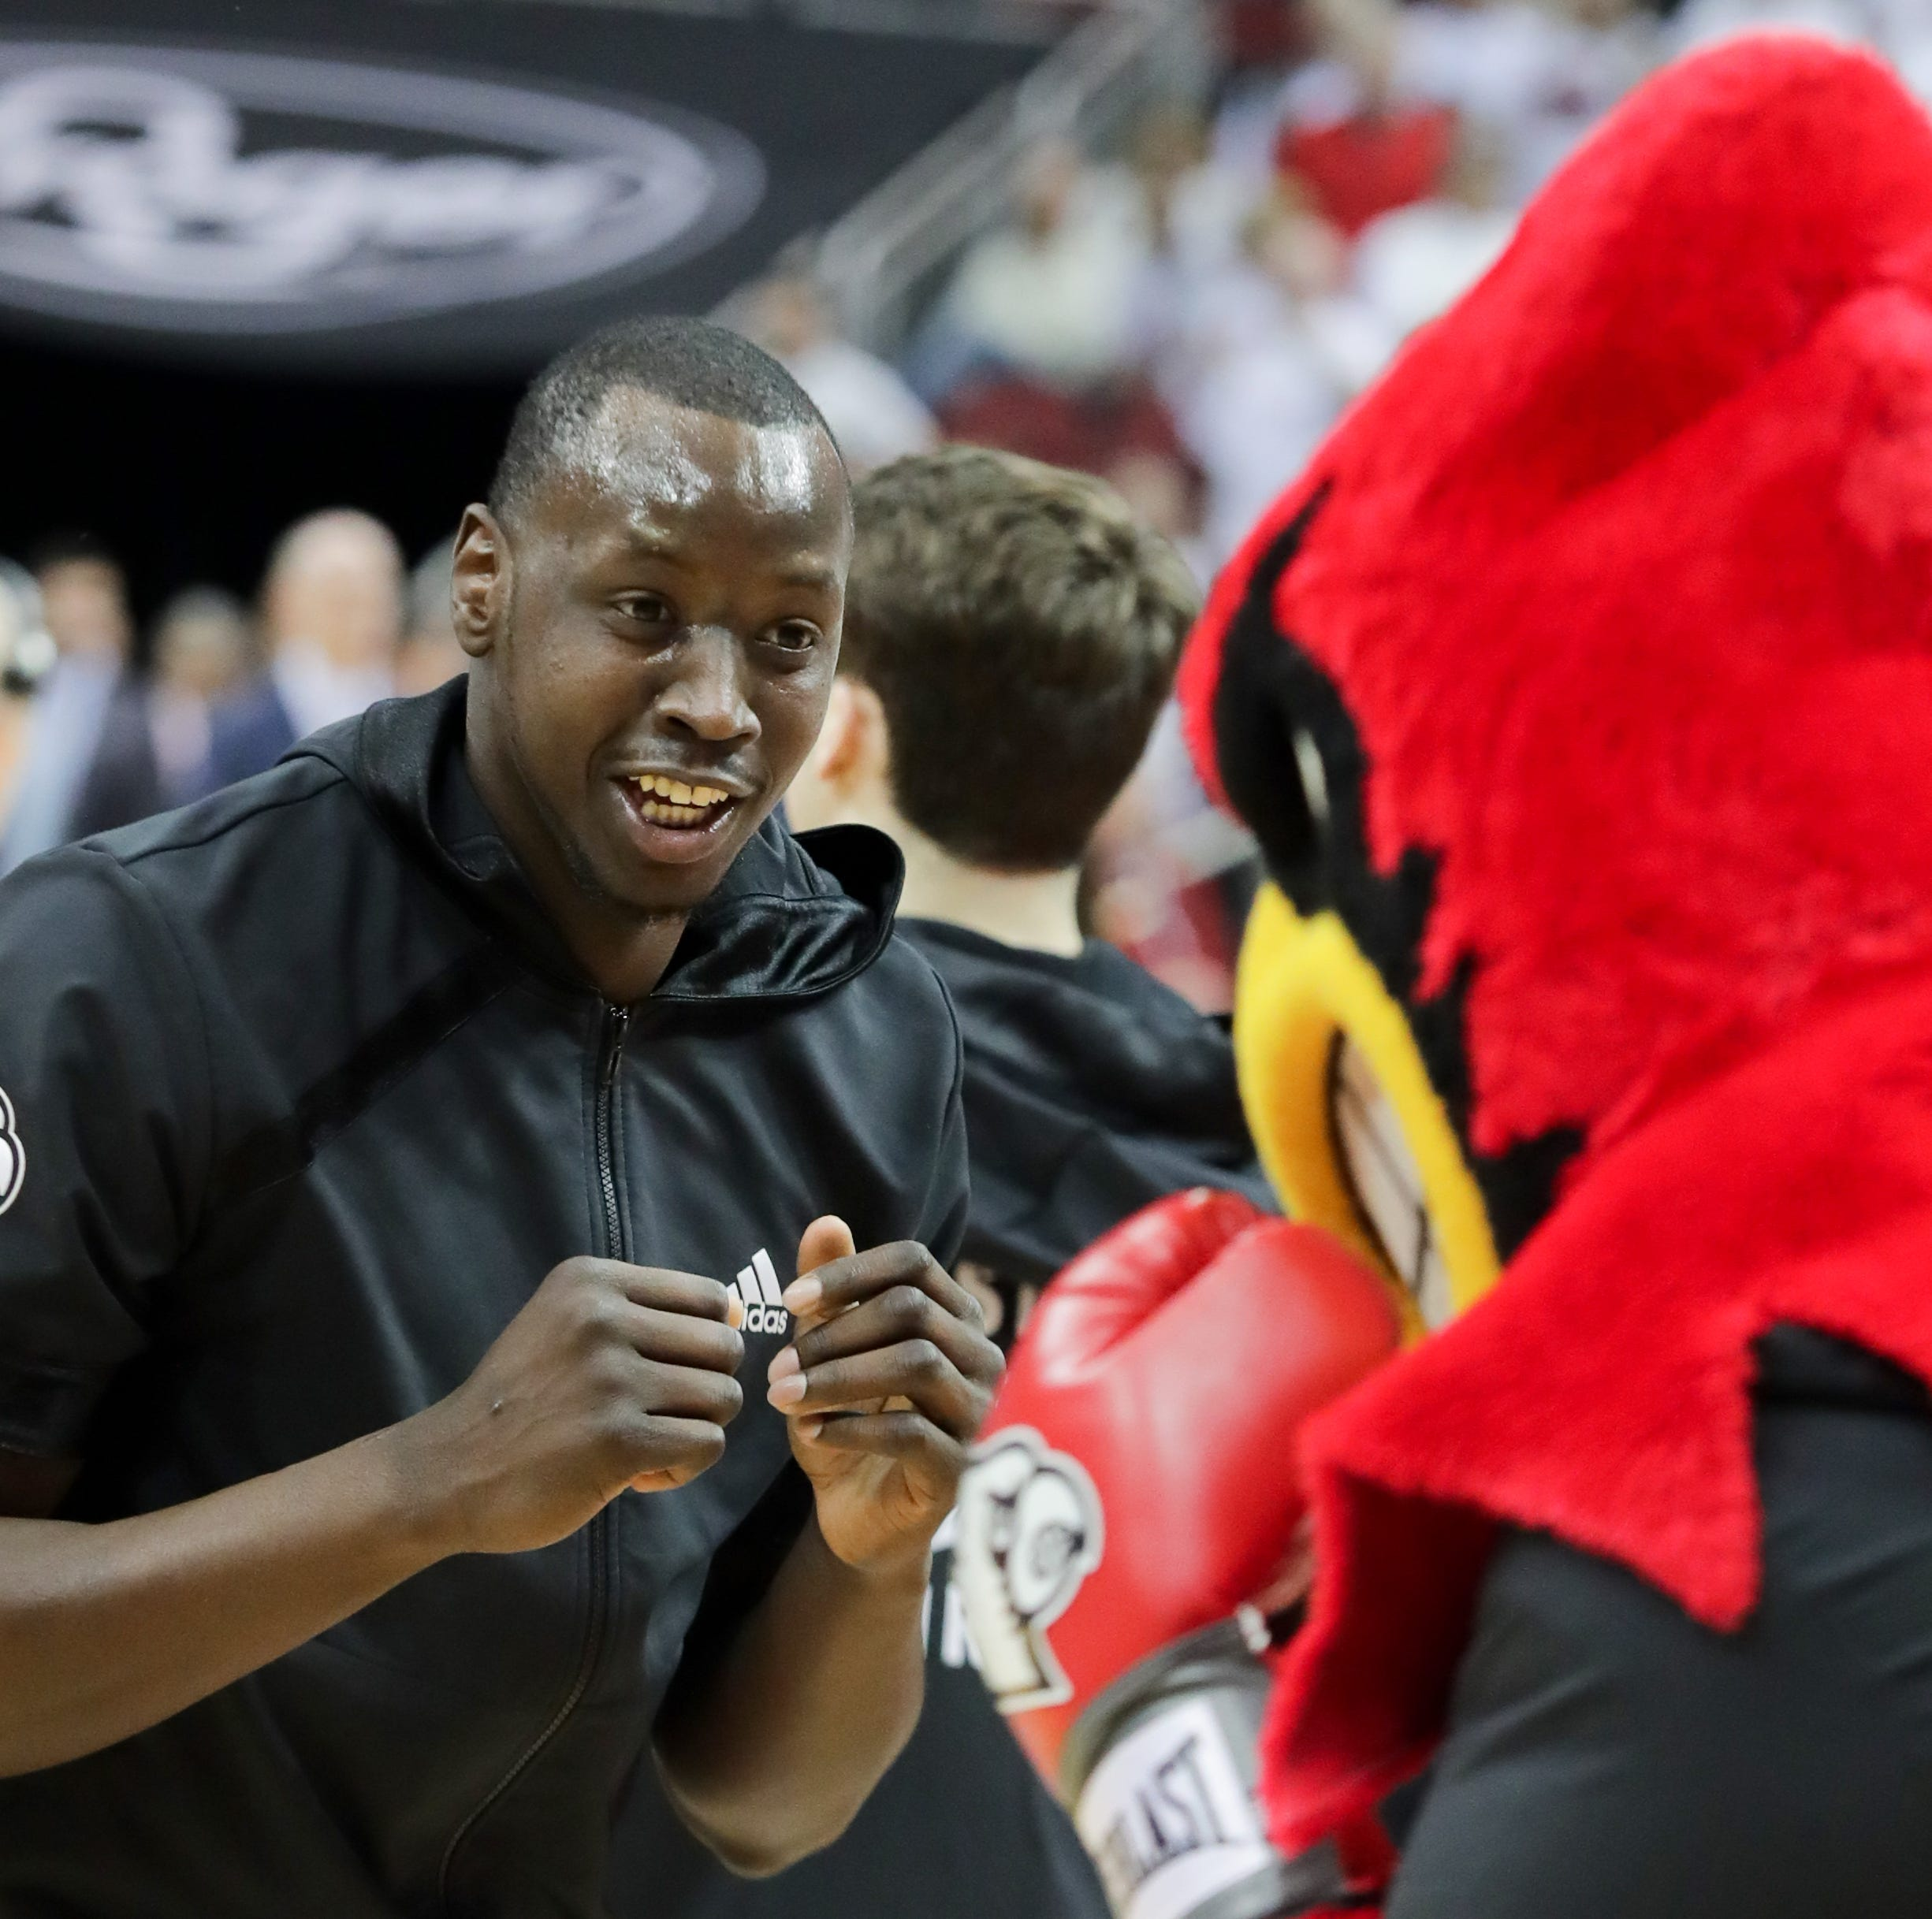 Louisville basketball vs. Notre Dame: How to watch, stream or listen